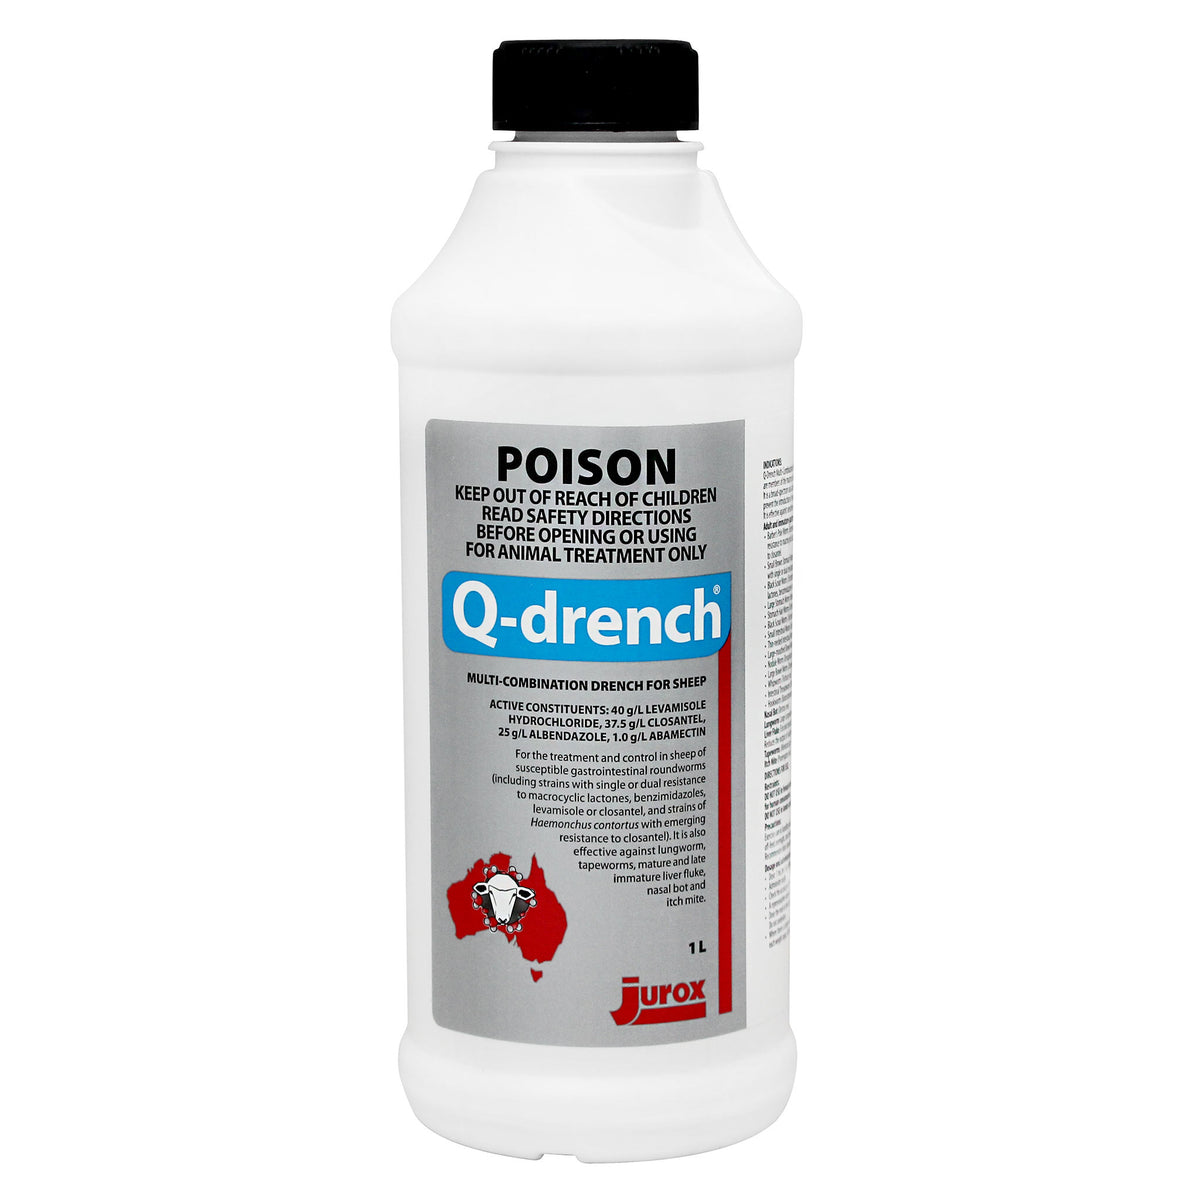 Q-drench Multi-Combination Drench for Sheep